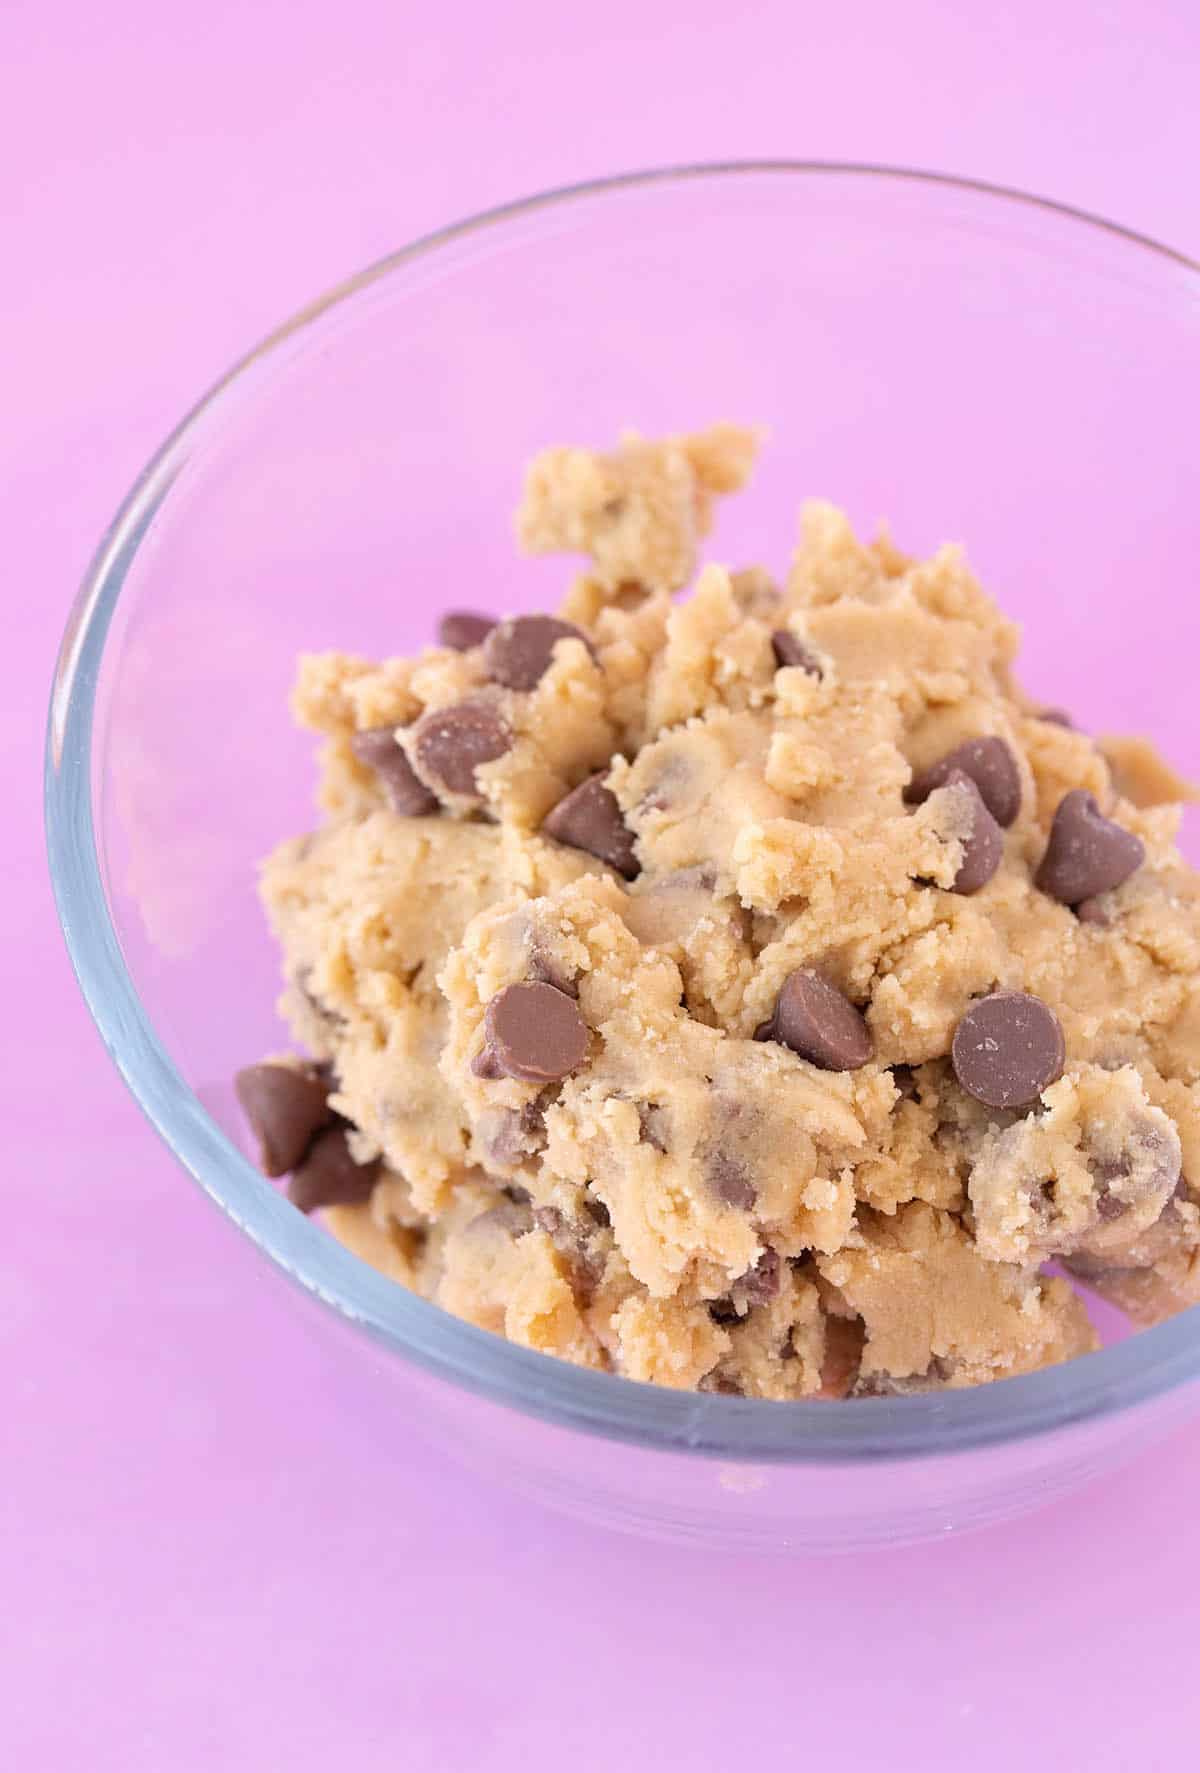 A glass bowl of chocolate chip cookie dough